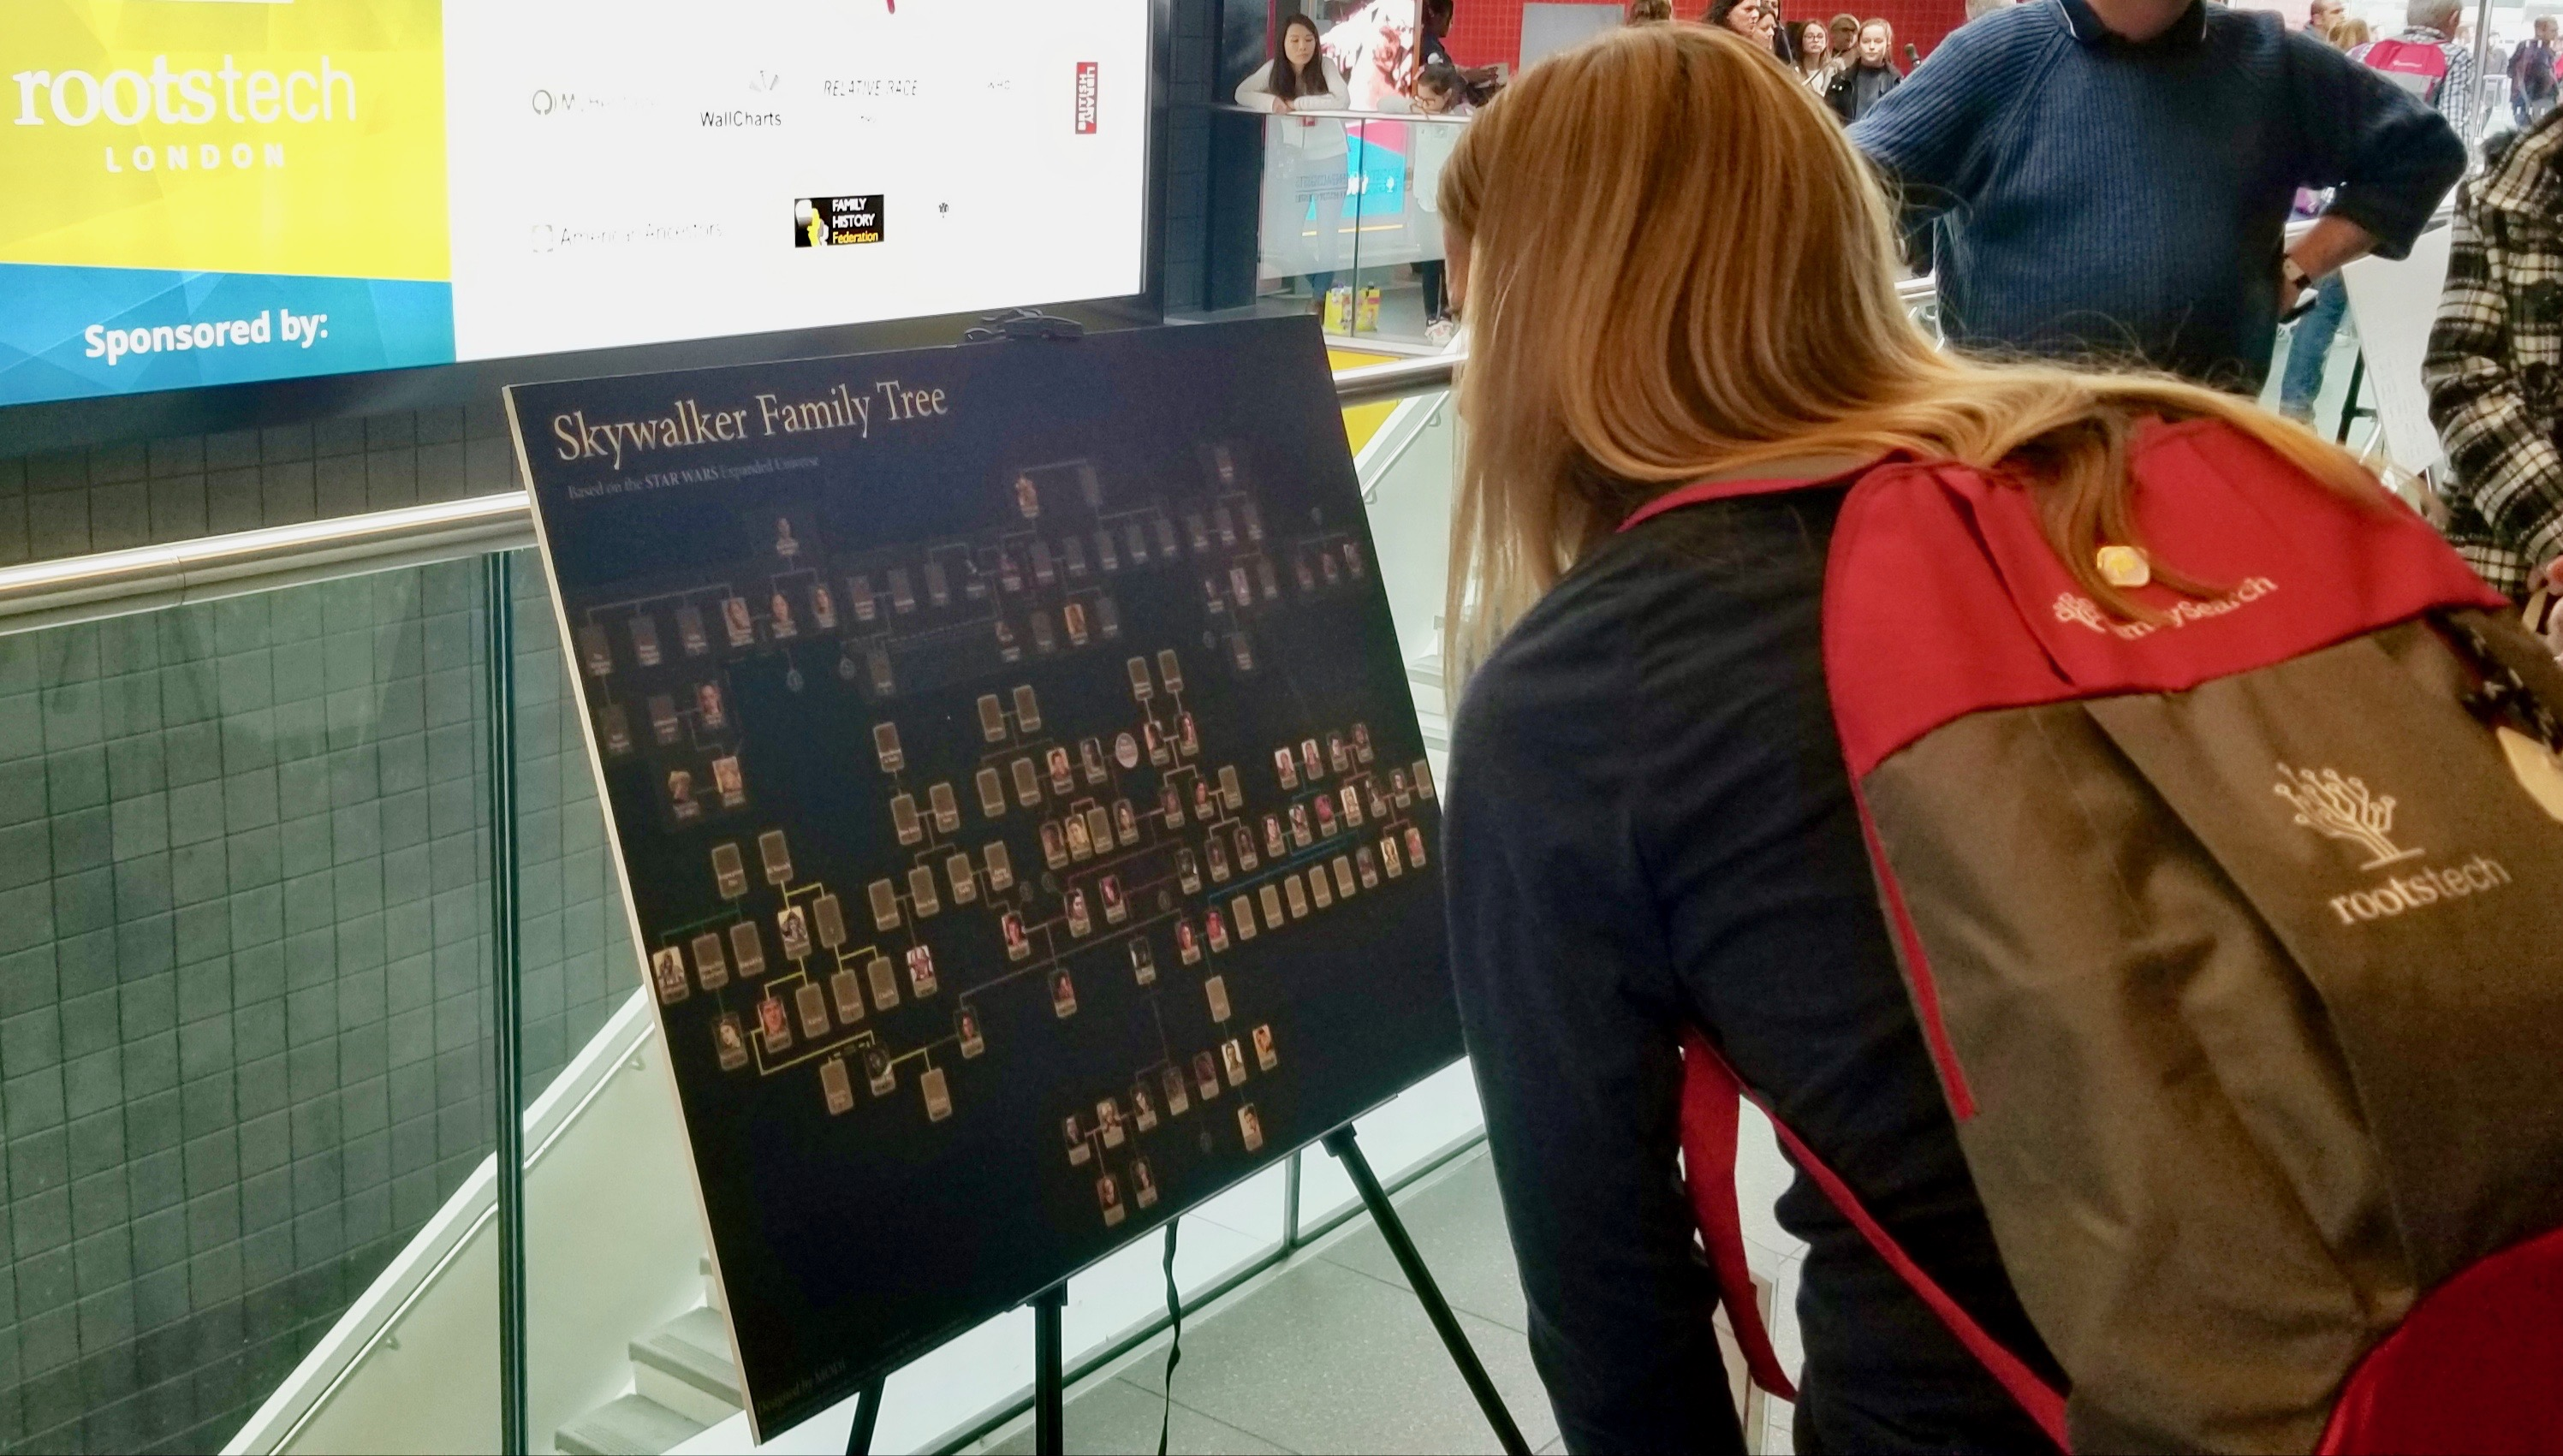 A RootsTech London attendee looks at a Luke Skywalker family pedigree chart — an effort to draw some attention and smiles from those participating in the neighboring Comic Con at the London ExCel on Oct. 26, 2019.